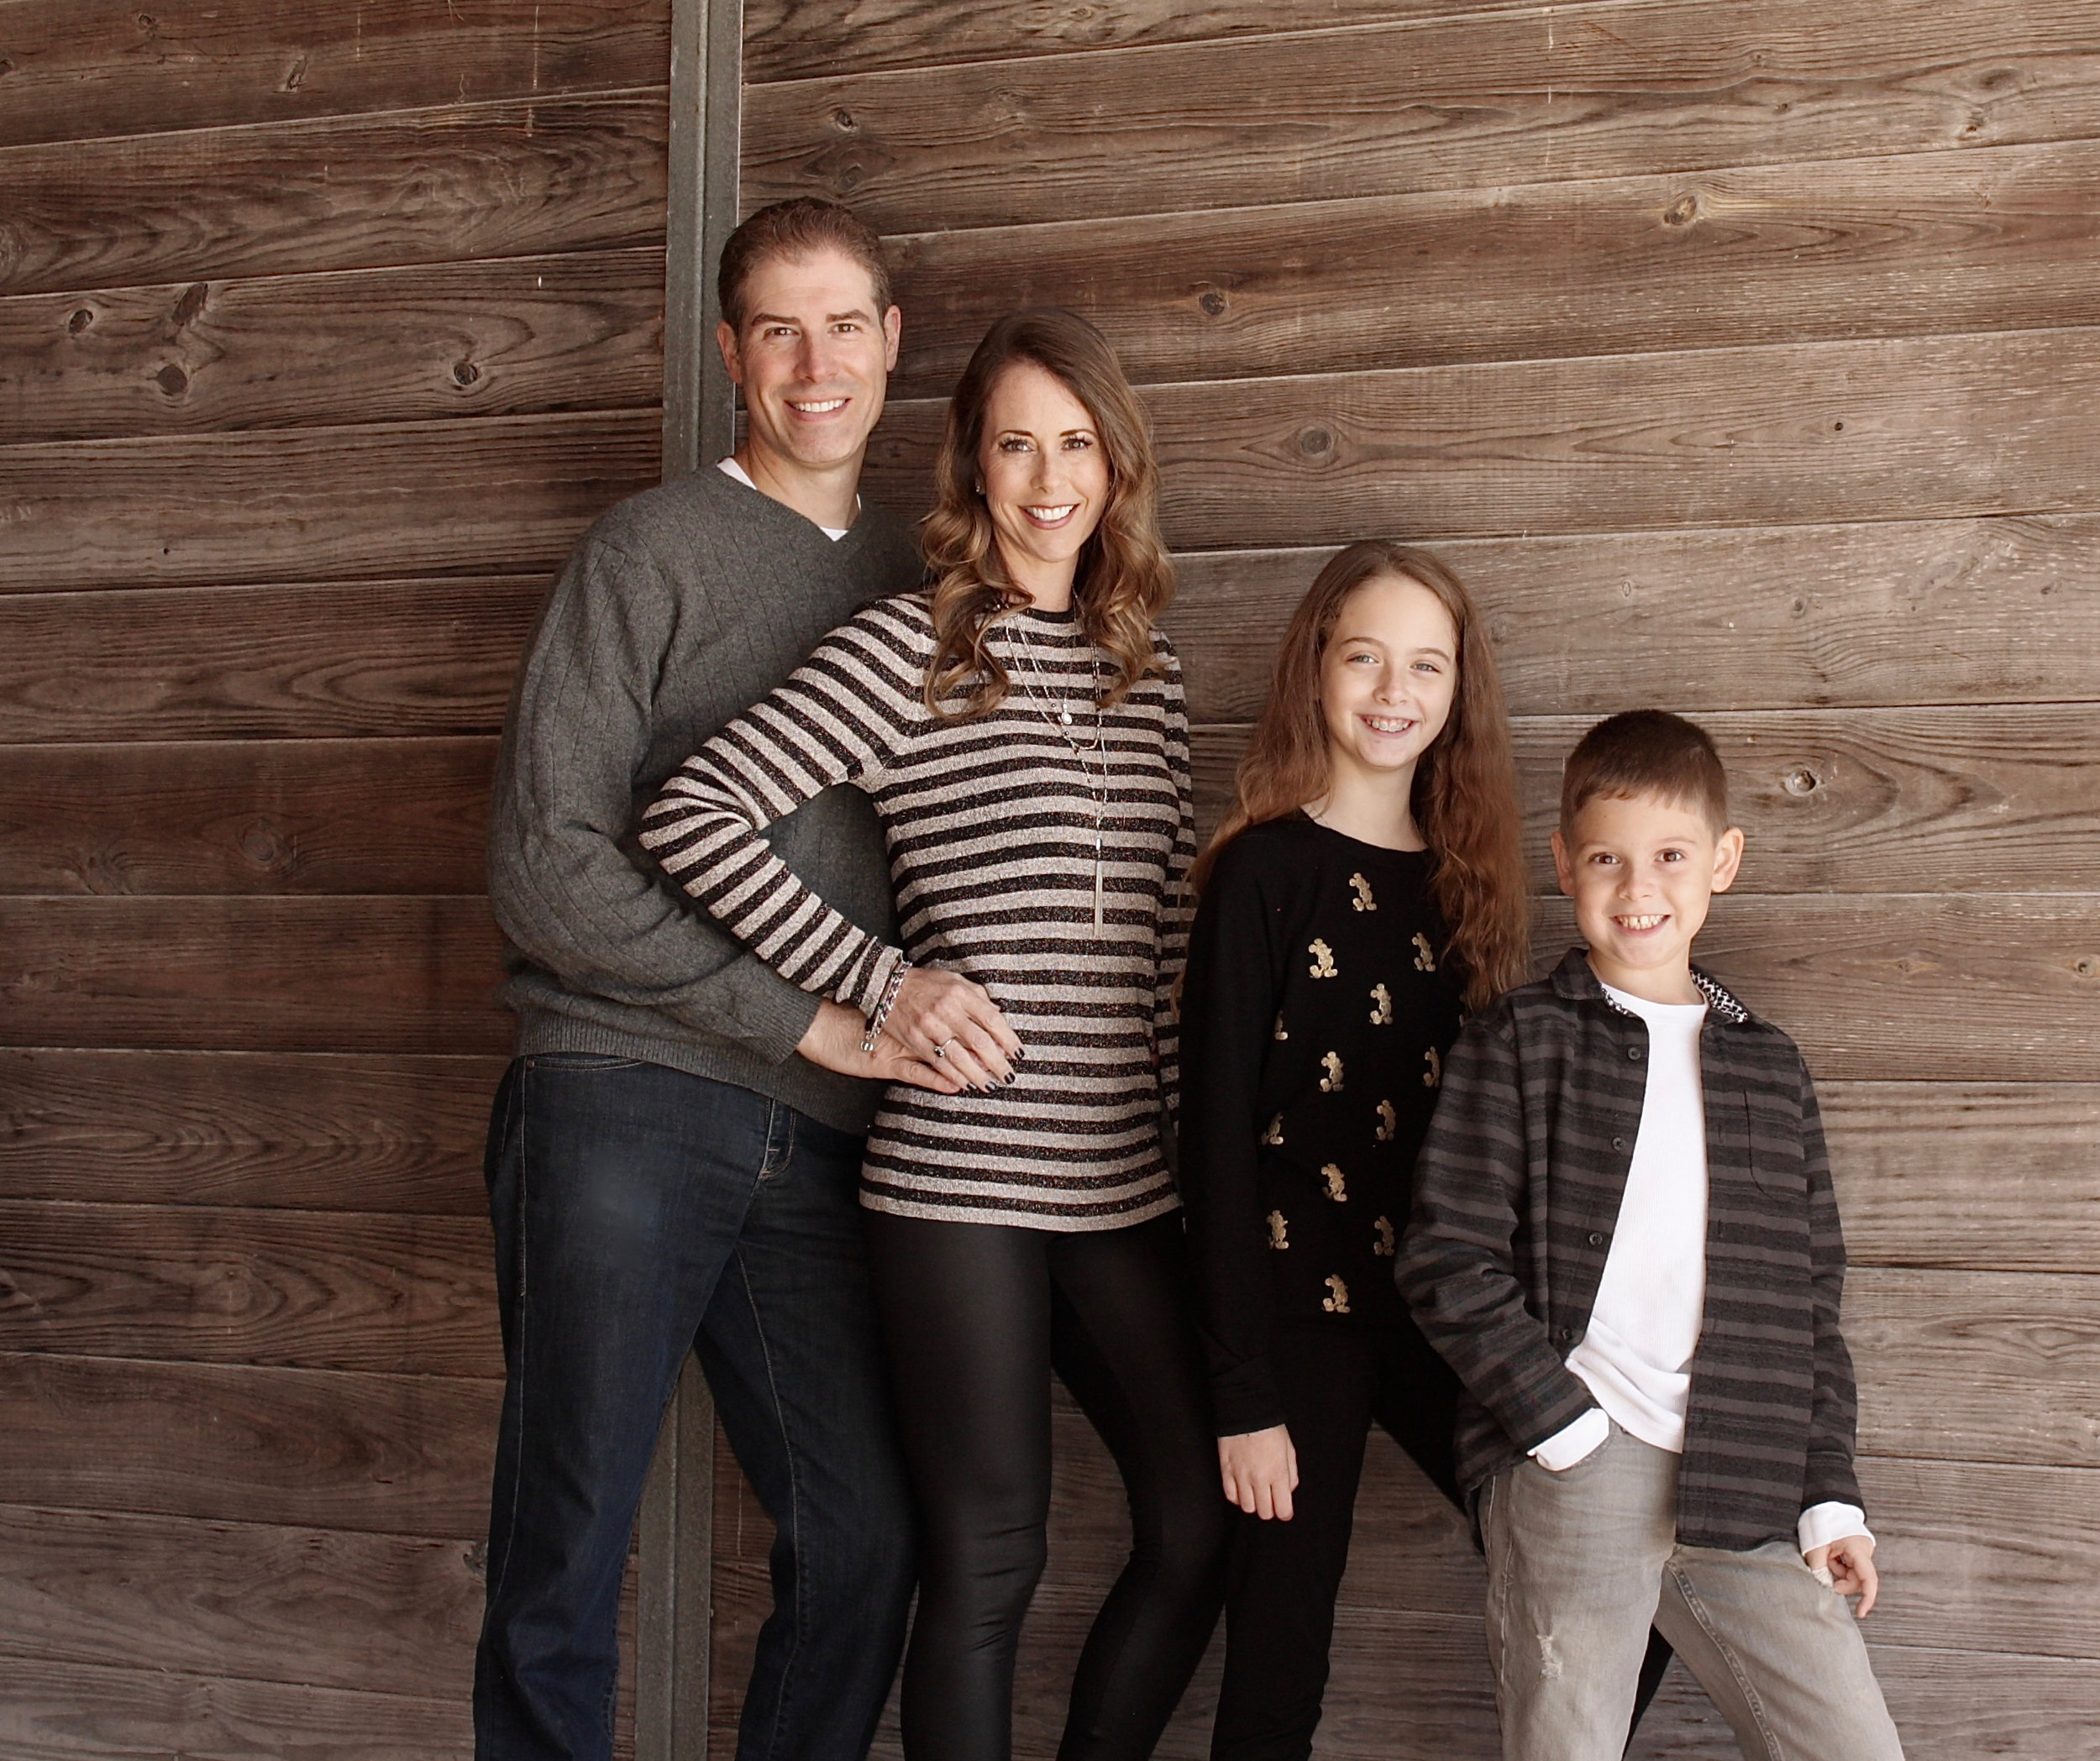 Owner, Rebecca Masel, with her husband, Gary, and their children, Alexandra and Spencer.